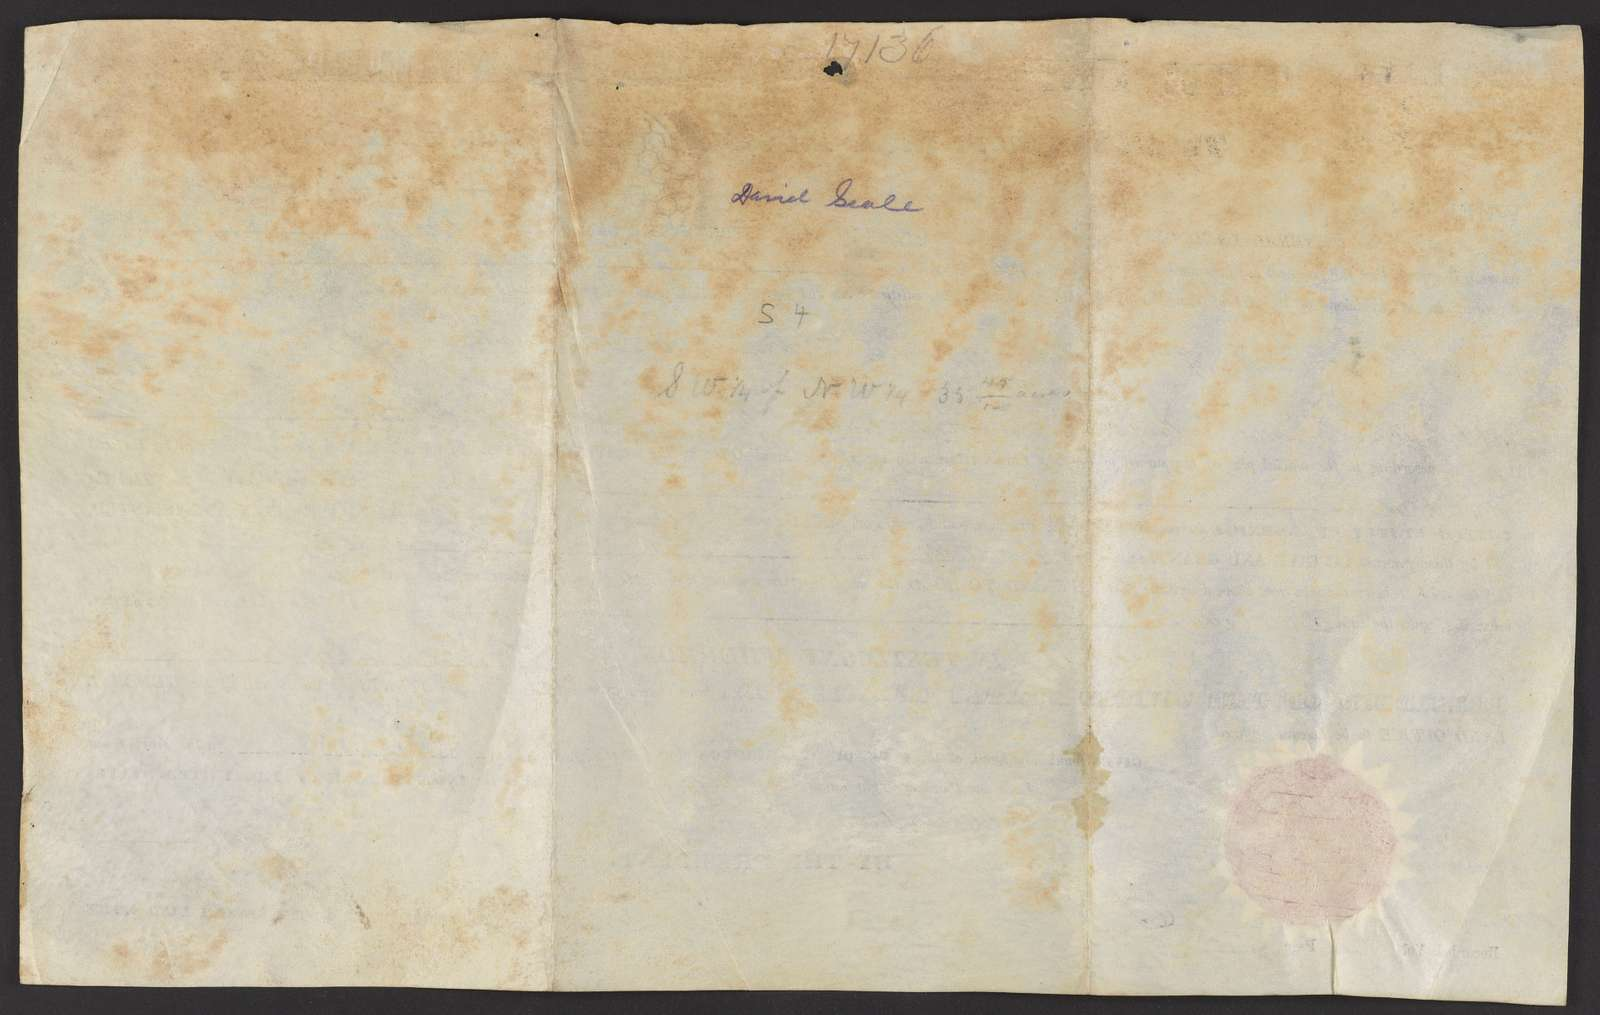 Deeds for land in Alabama, 1833-1834